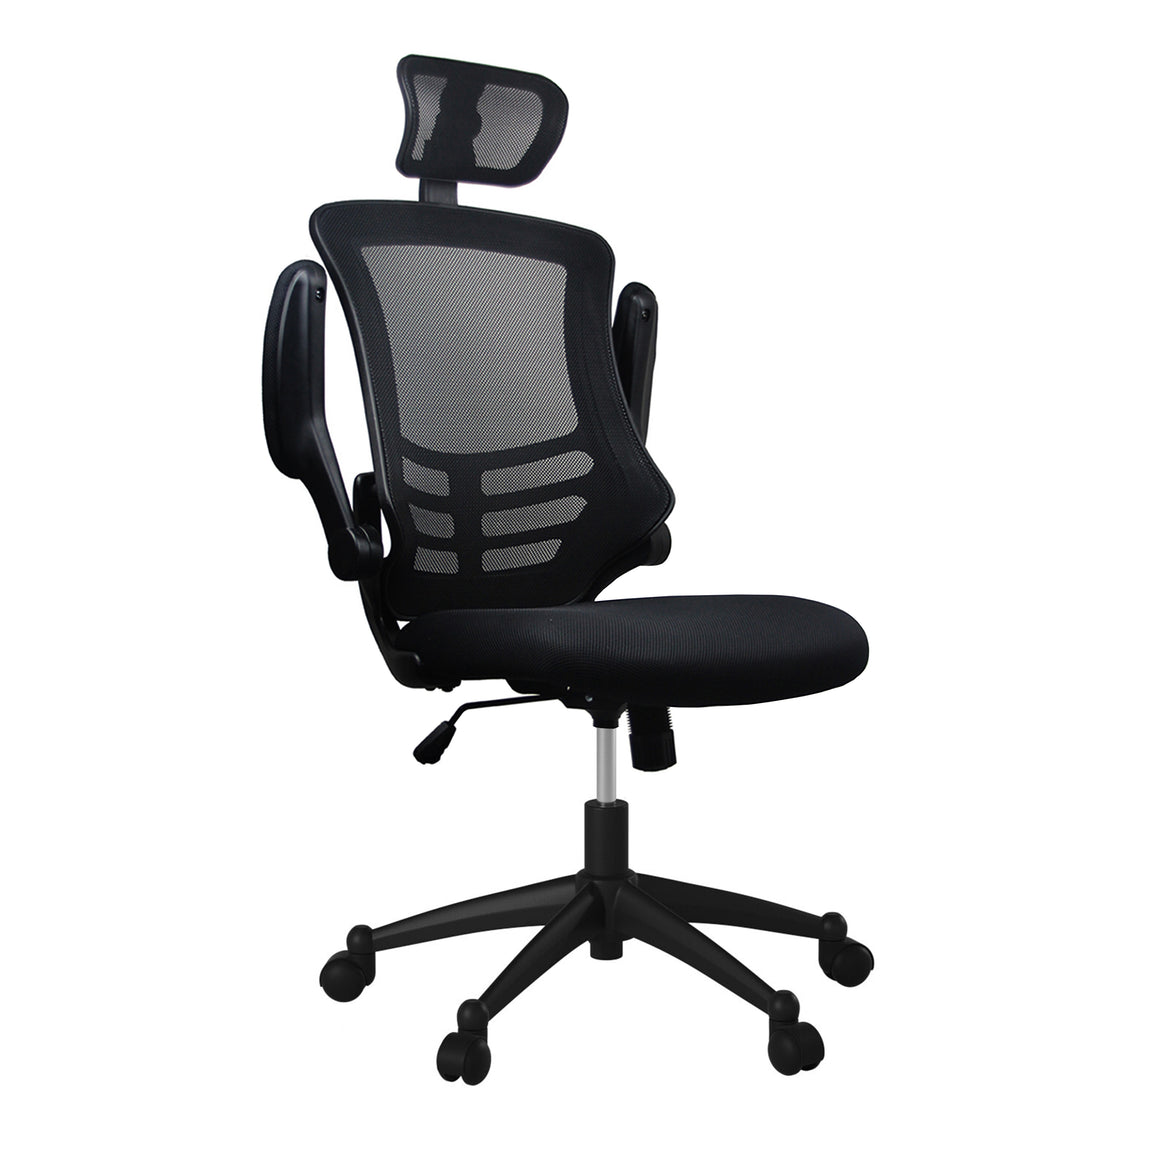 Modern High-Back Mesh Executive Office Chair With Headrest And Flip Up Arms